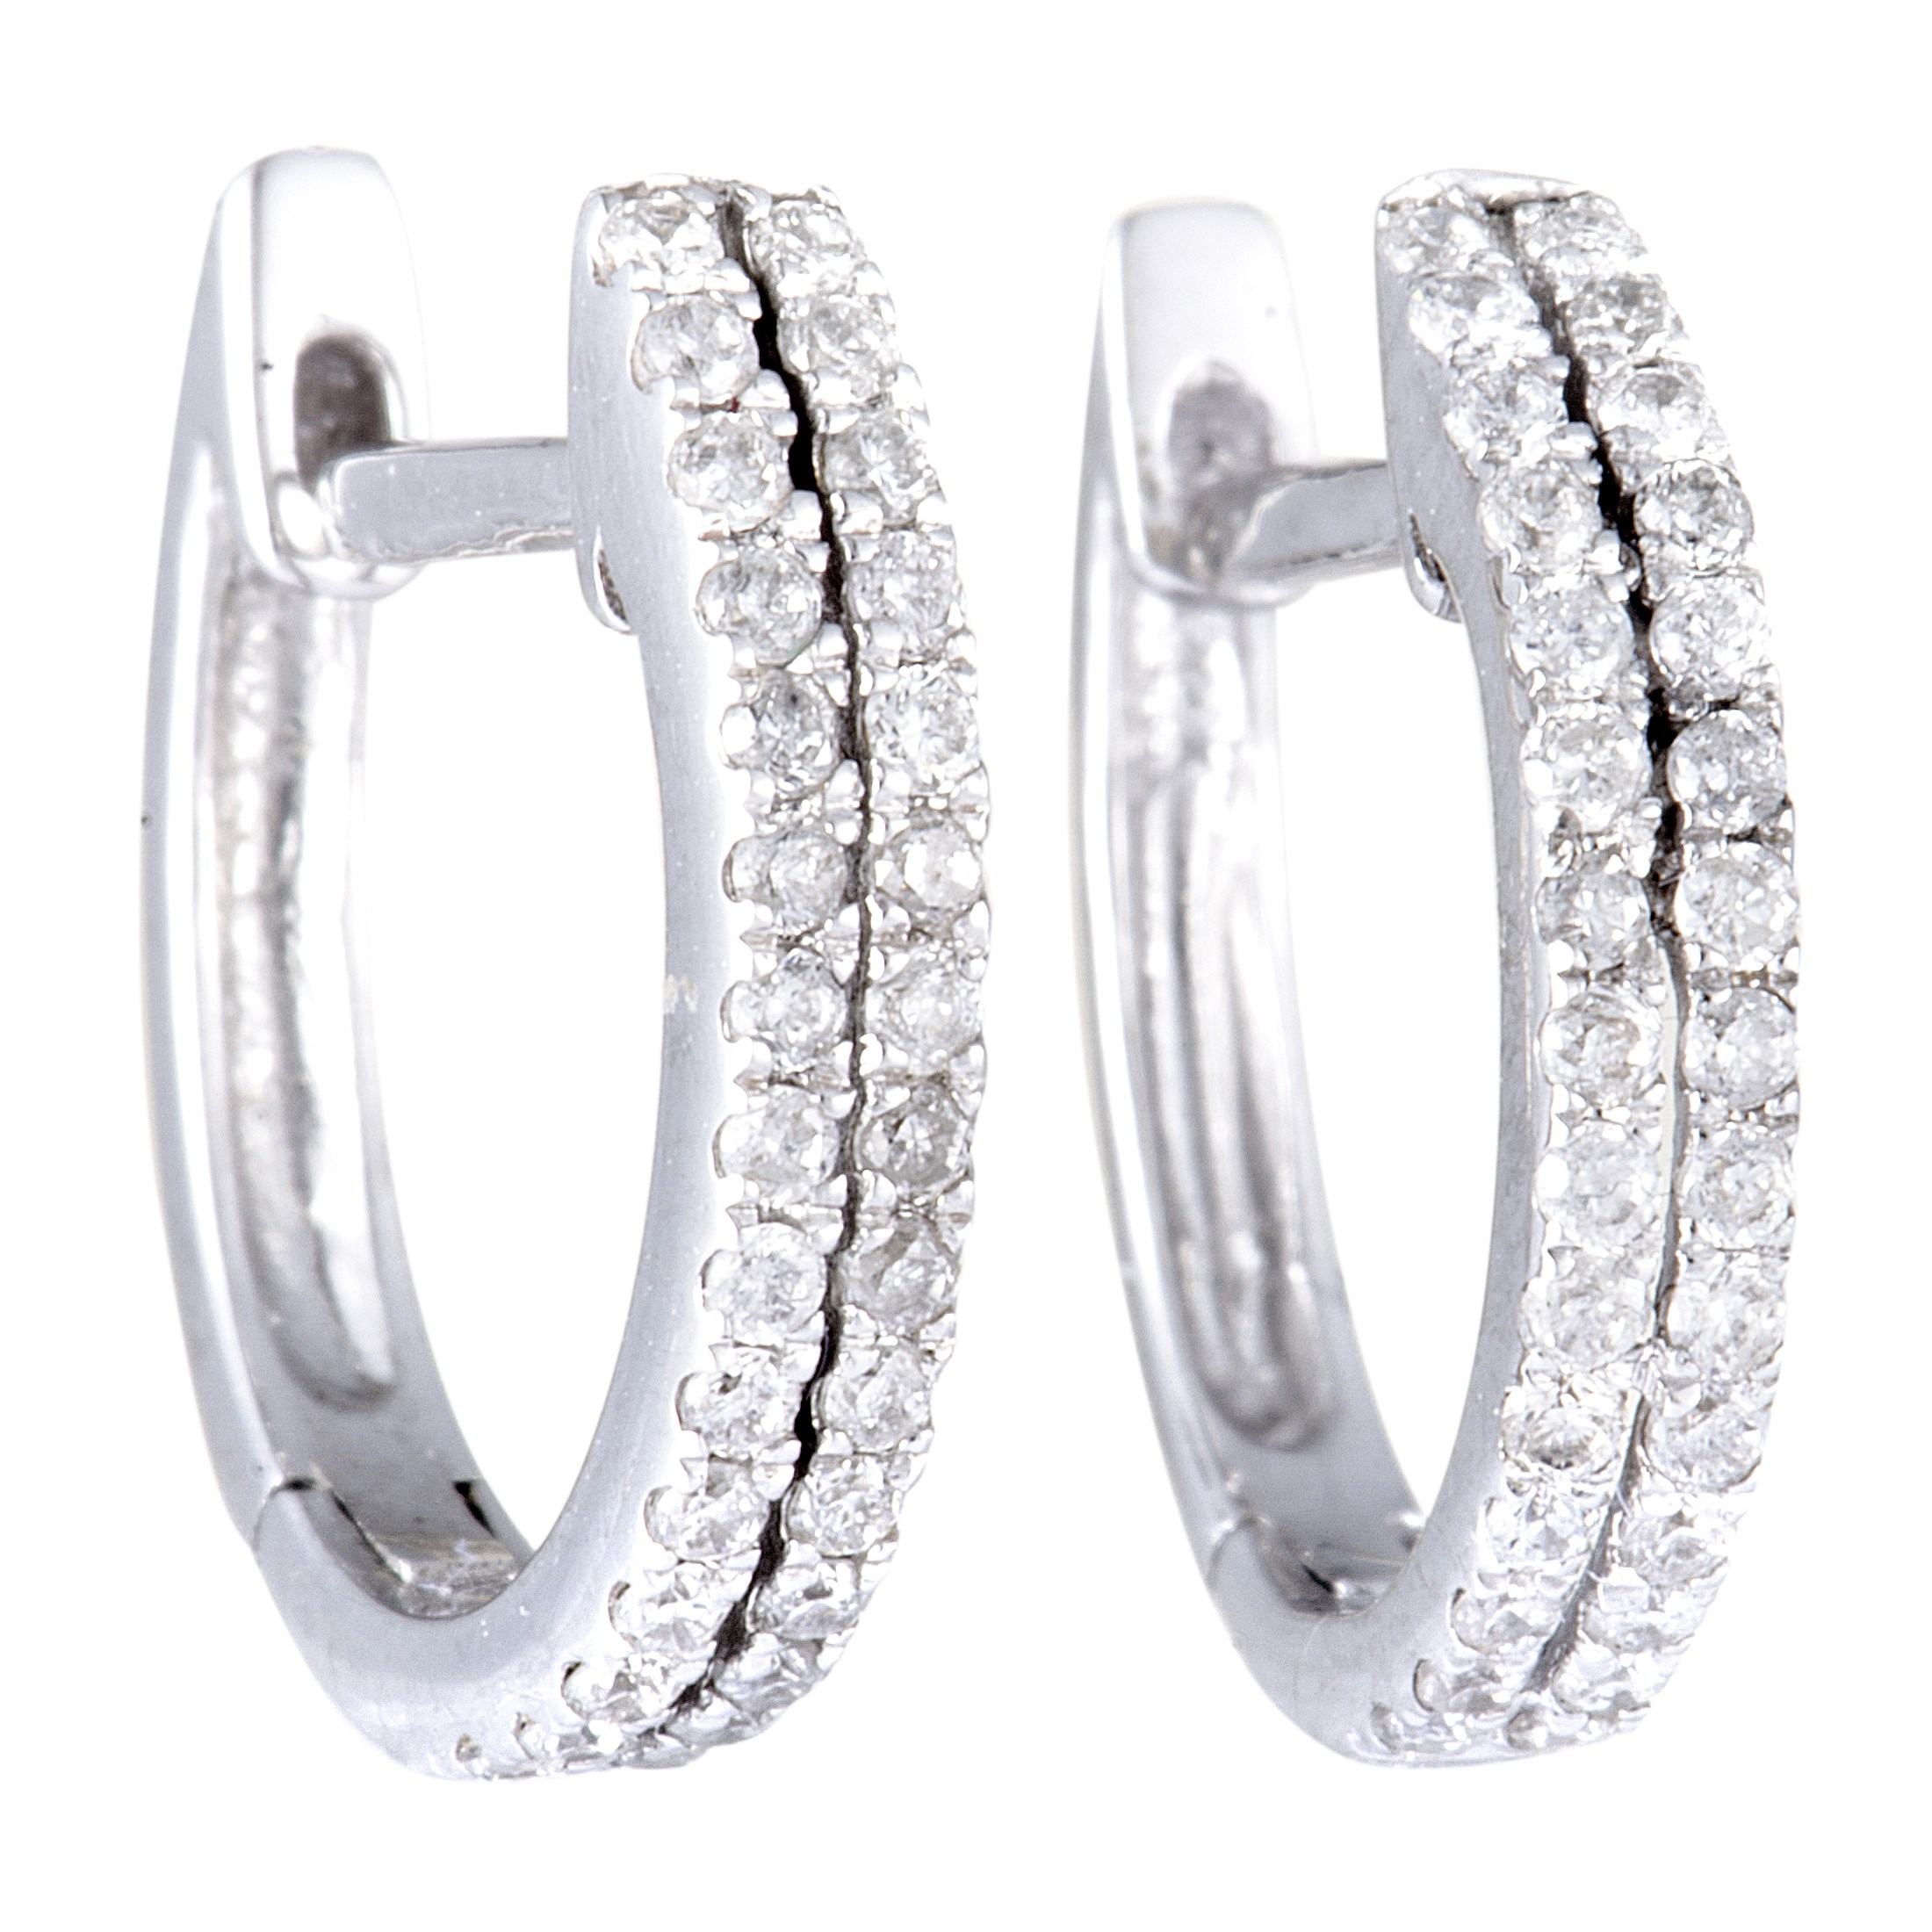 Women's 14K White Gold Two-Row Diamond Hoop Earrings AER-9838W